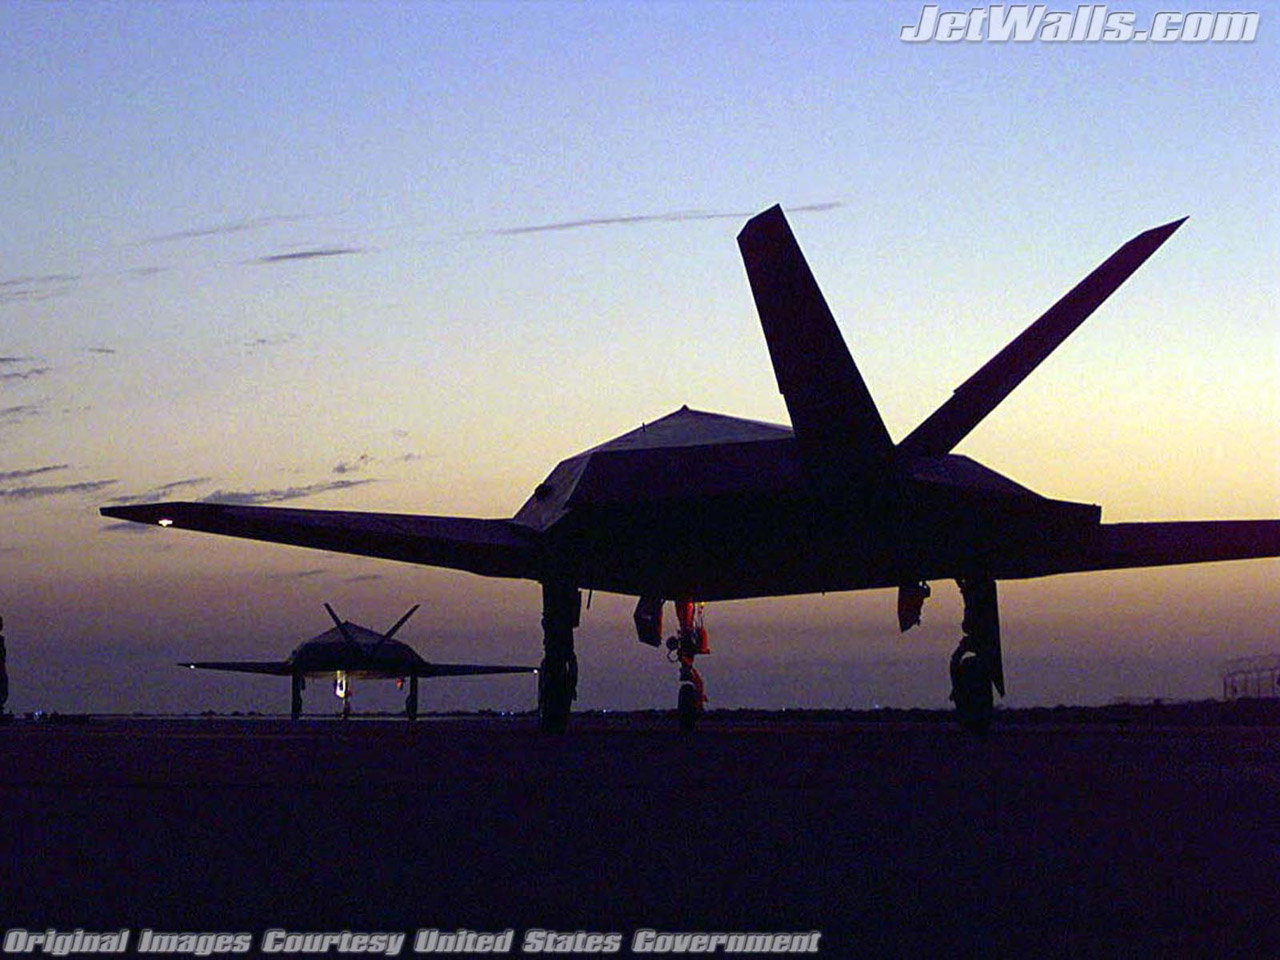 """F-117 Nighthawks"" - Wallpaper No. 5 of 101. Right click for saving options."